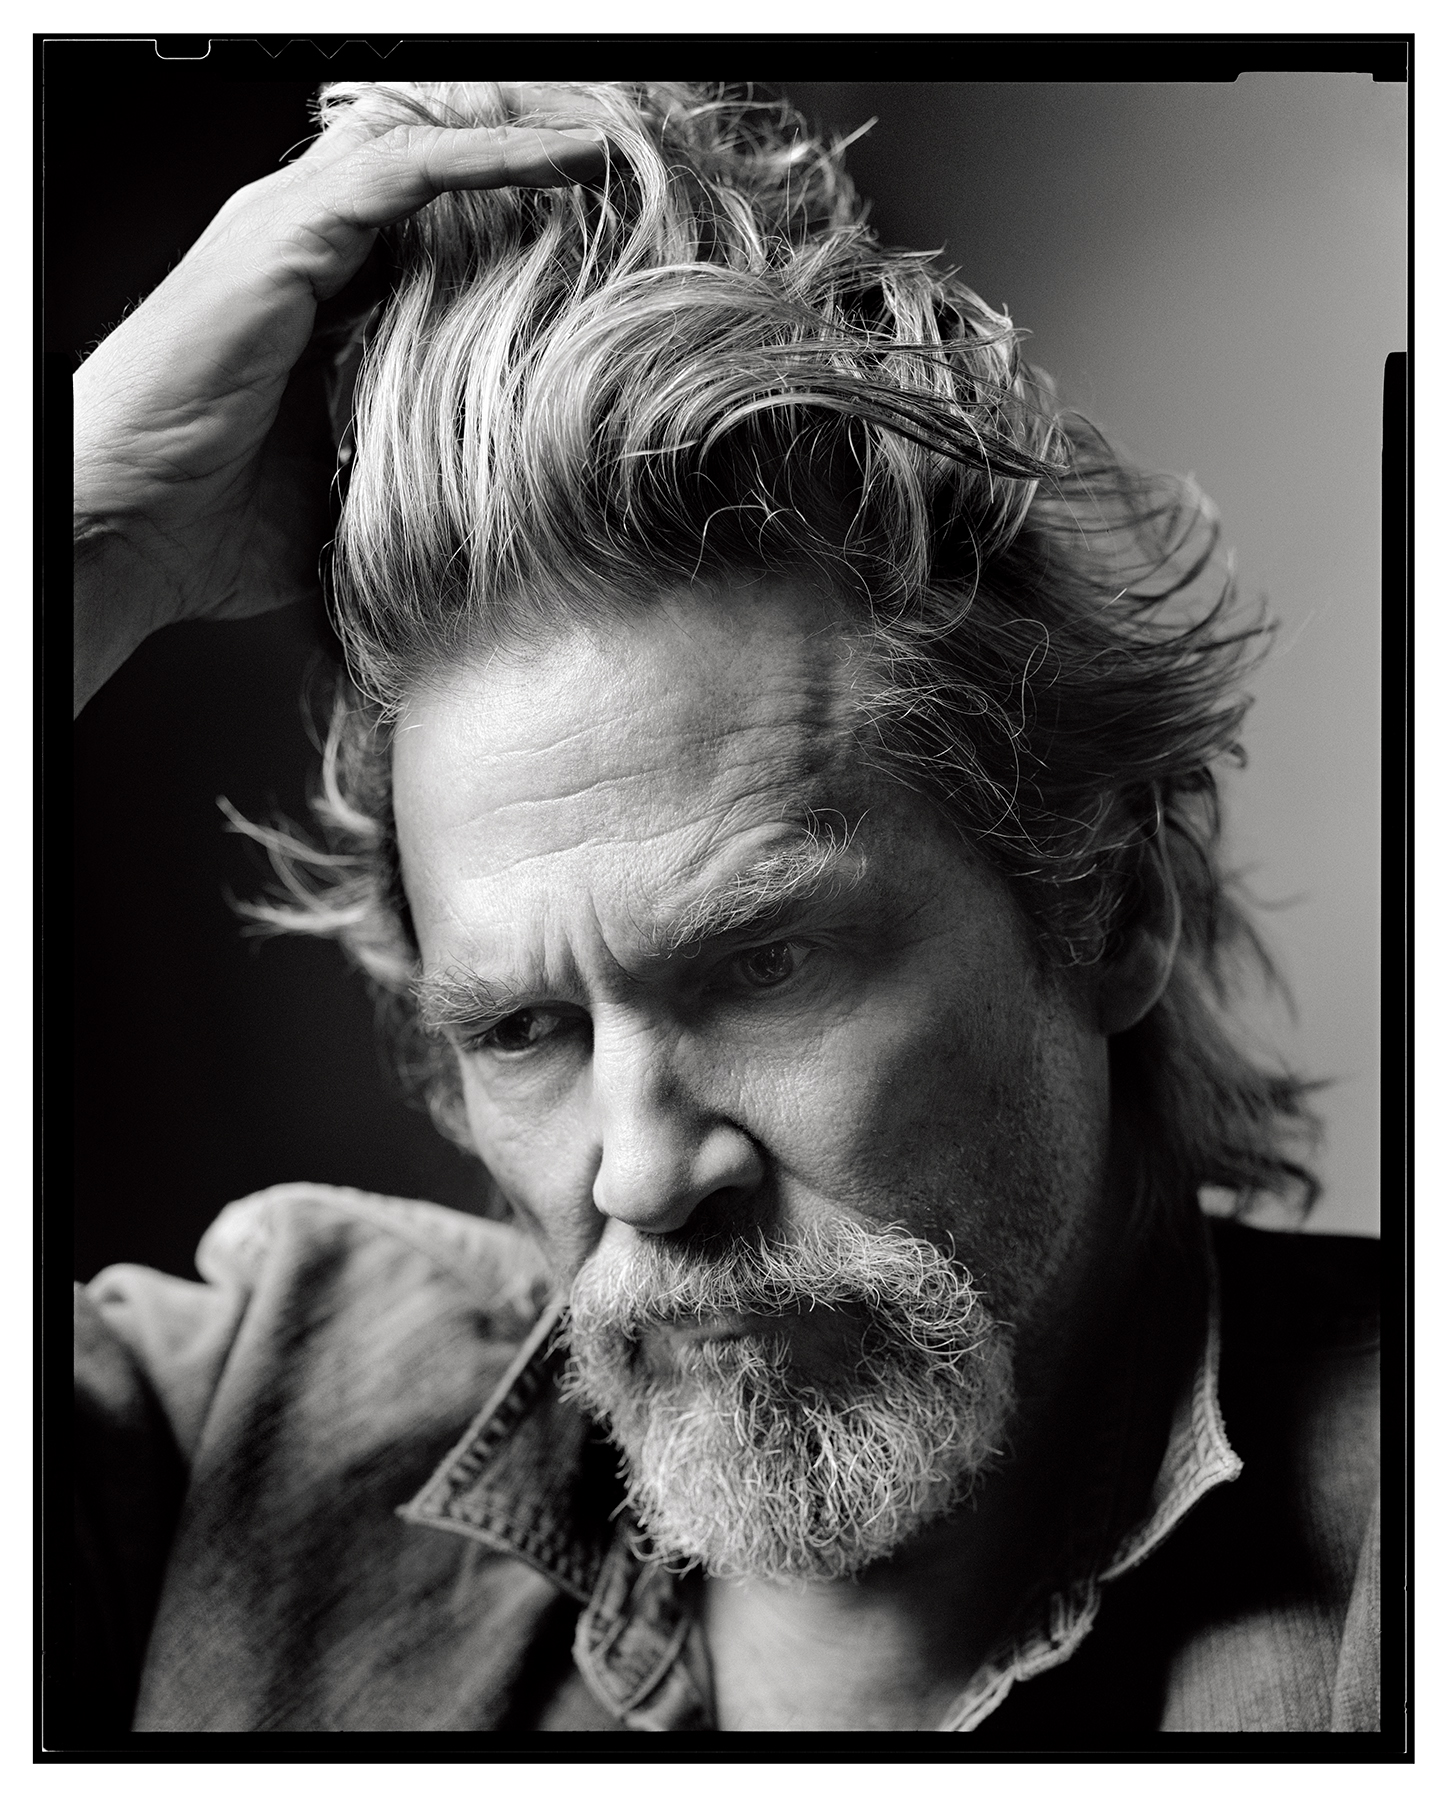 Interview with Mark Seliger Photographer